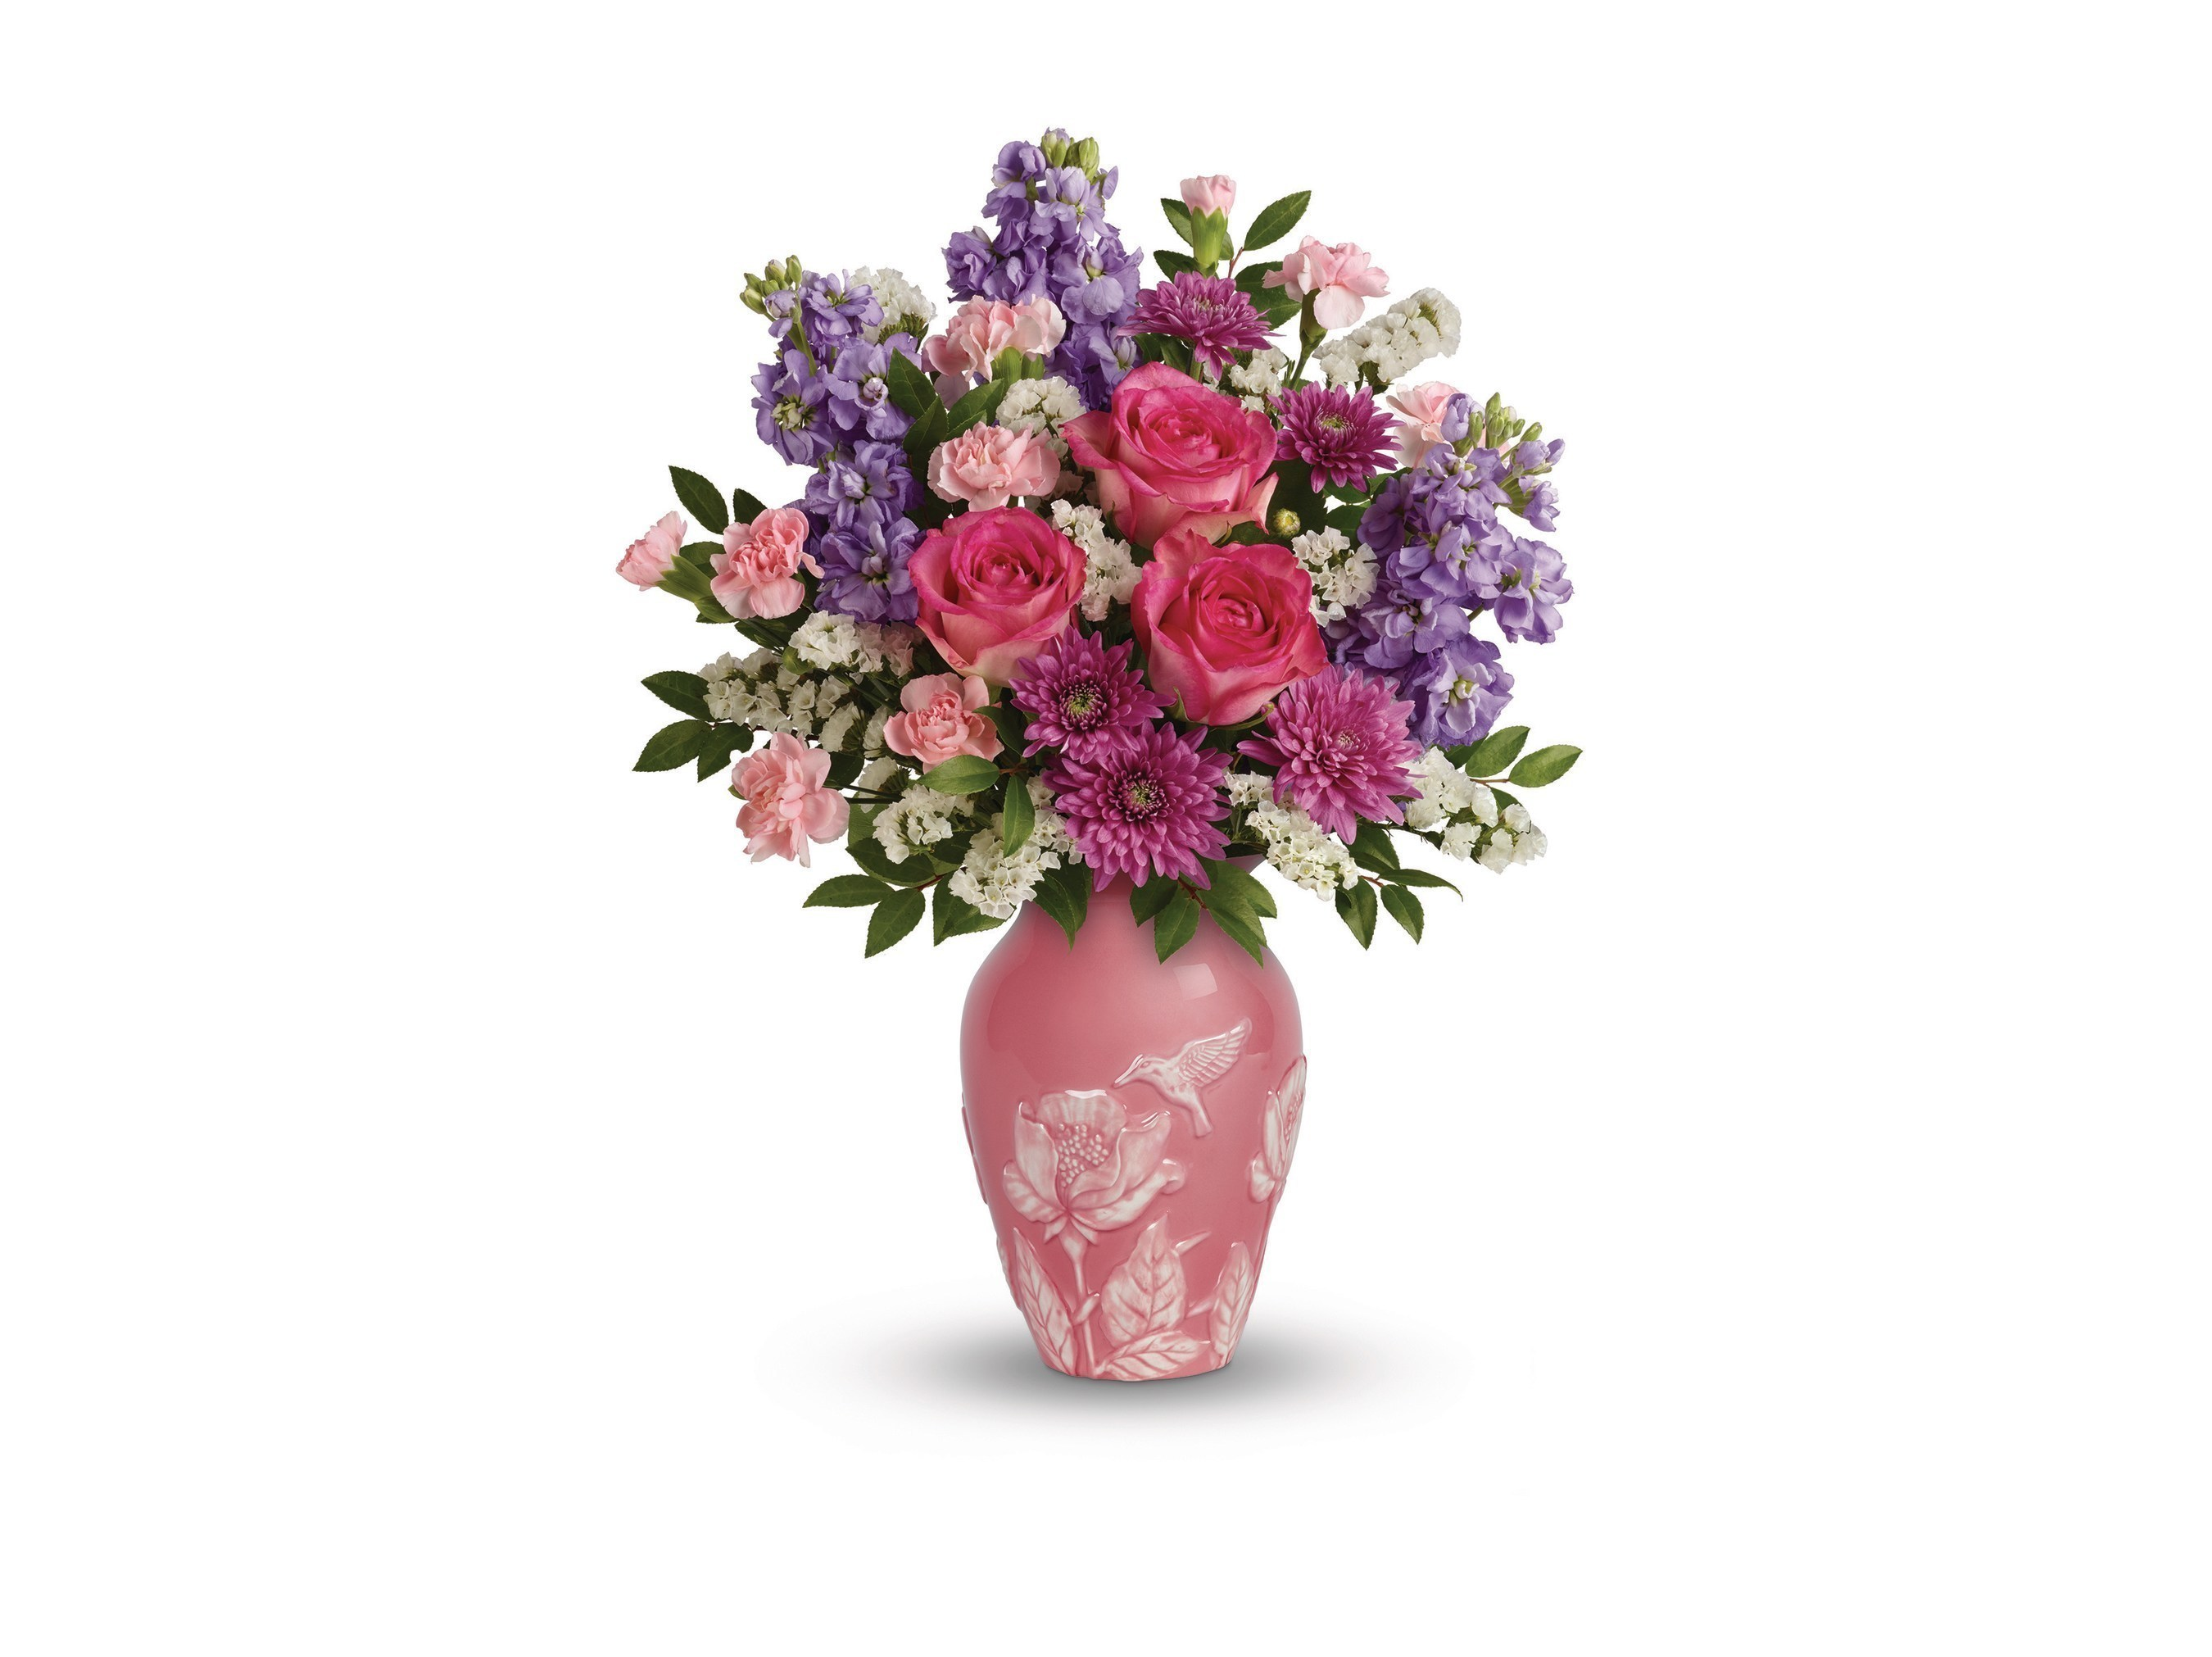 Teleflora's New Love and Joy Bouquet for Mother's Day 2016